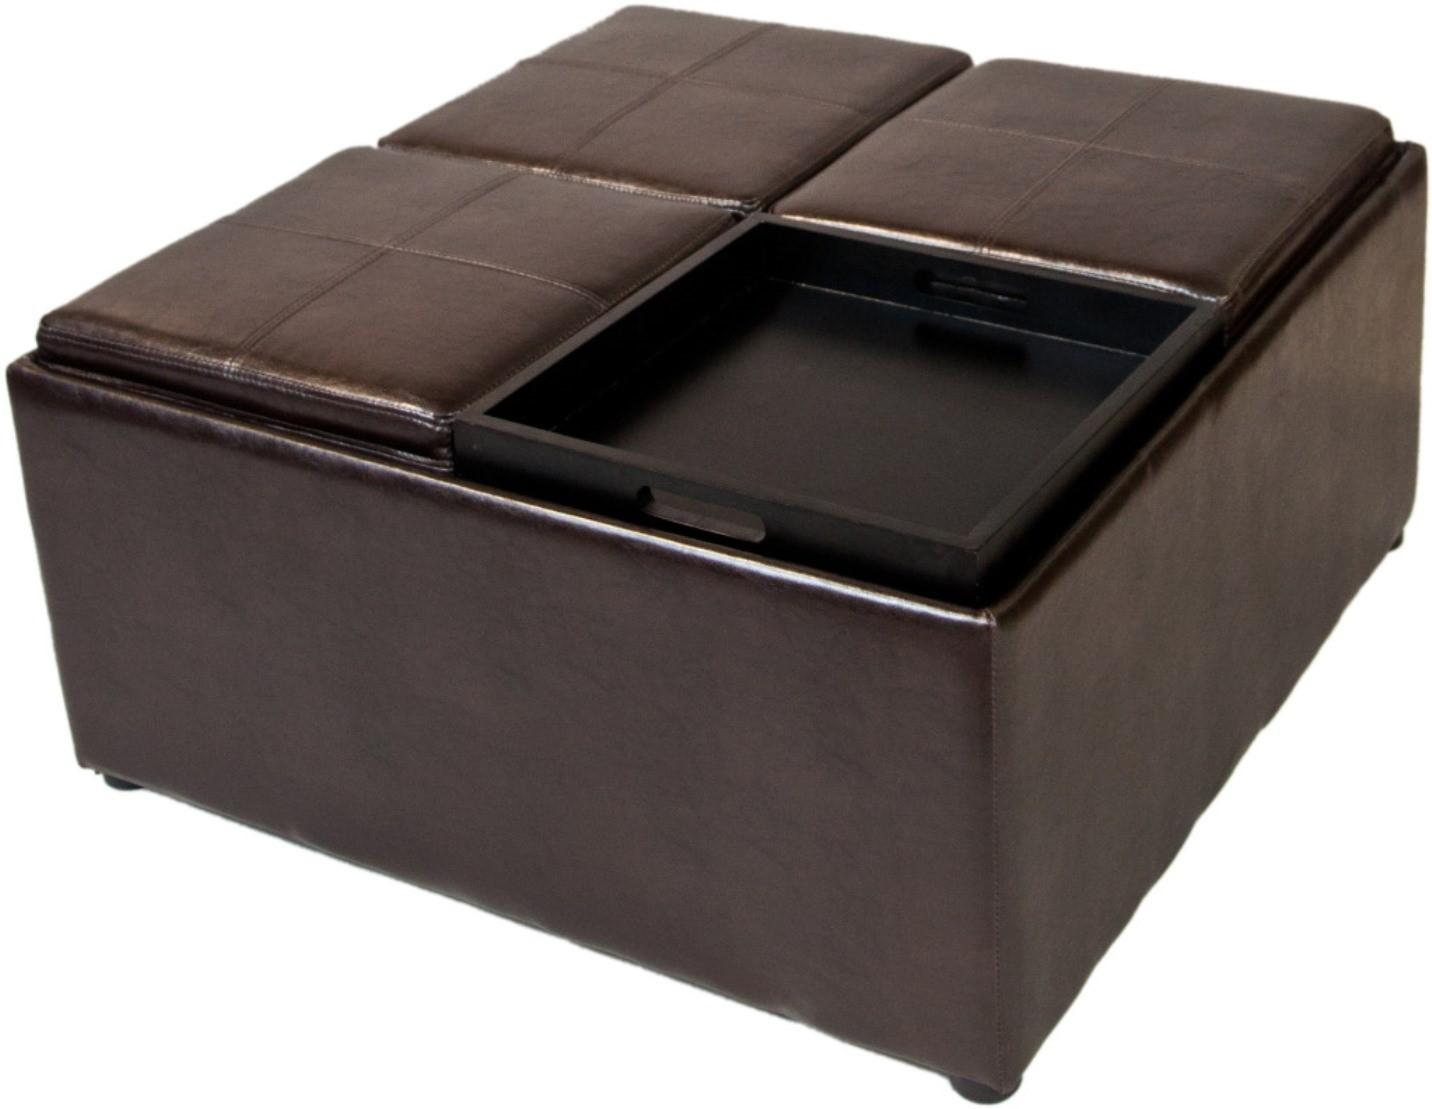 square leather ottoman with large ottoman tray in black for home furniture ideas